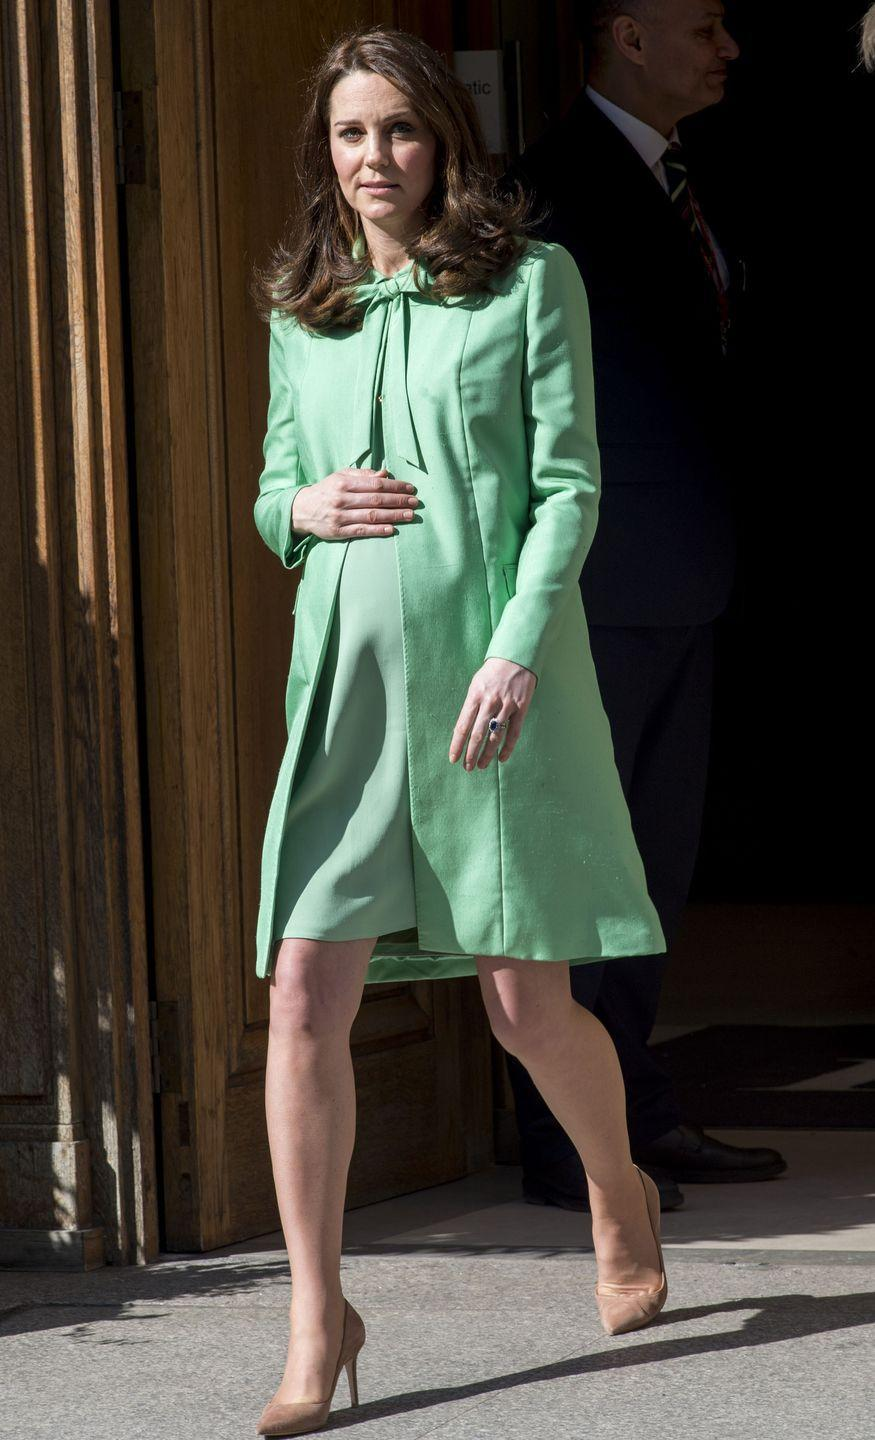 """<p>She would, however, always return to the trusted coat-dress combo. In this striking <a href=""""https://www.cosmopolitan.com/uk/fashion/celebrity/a19559081/kate-middleton-mint-green-coat/"""" rel=""""nofollow noopener"""" target=""""_blank"""" data-ylk=""""slk:green ensemble"""" class=""""link rapid-noclick-resp"""">green ensemble</a>, the overcoat's open design revealed her bump (and a beautiful matching dress). </p>"""